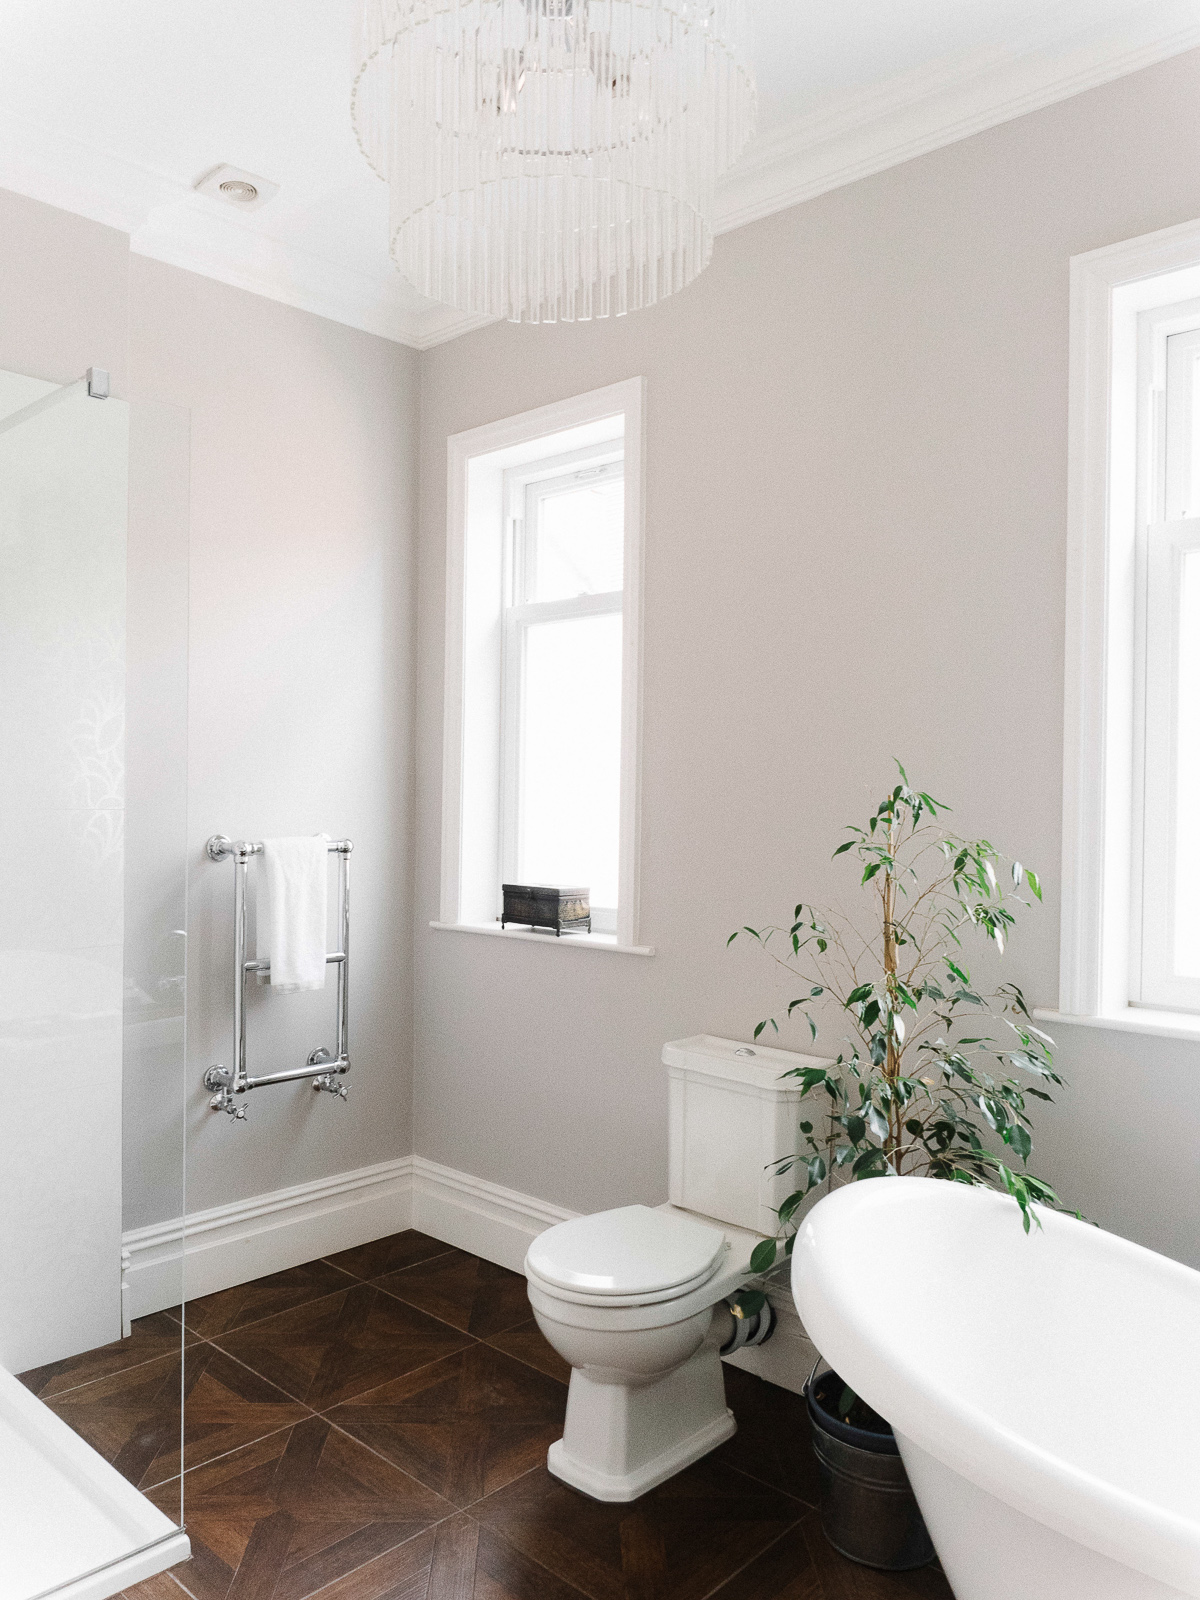 5 ways to achieve the hotel bathroom look in your own home